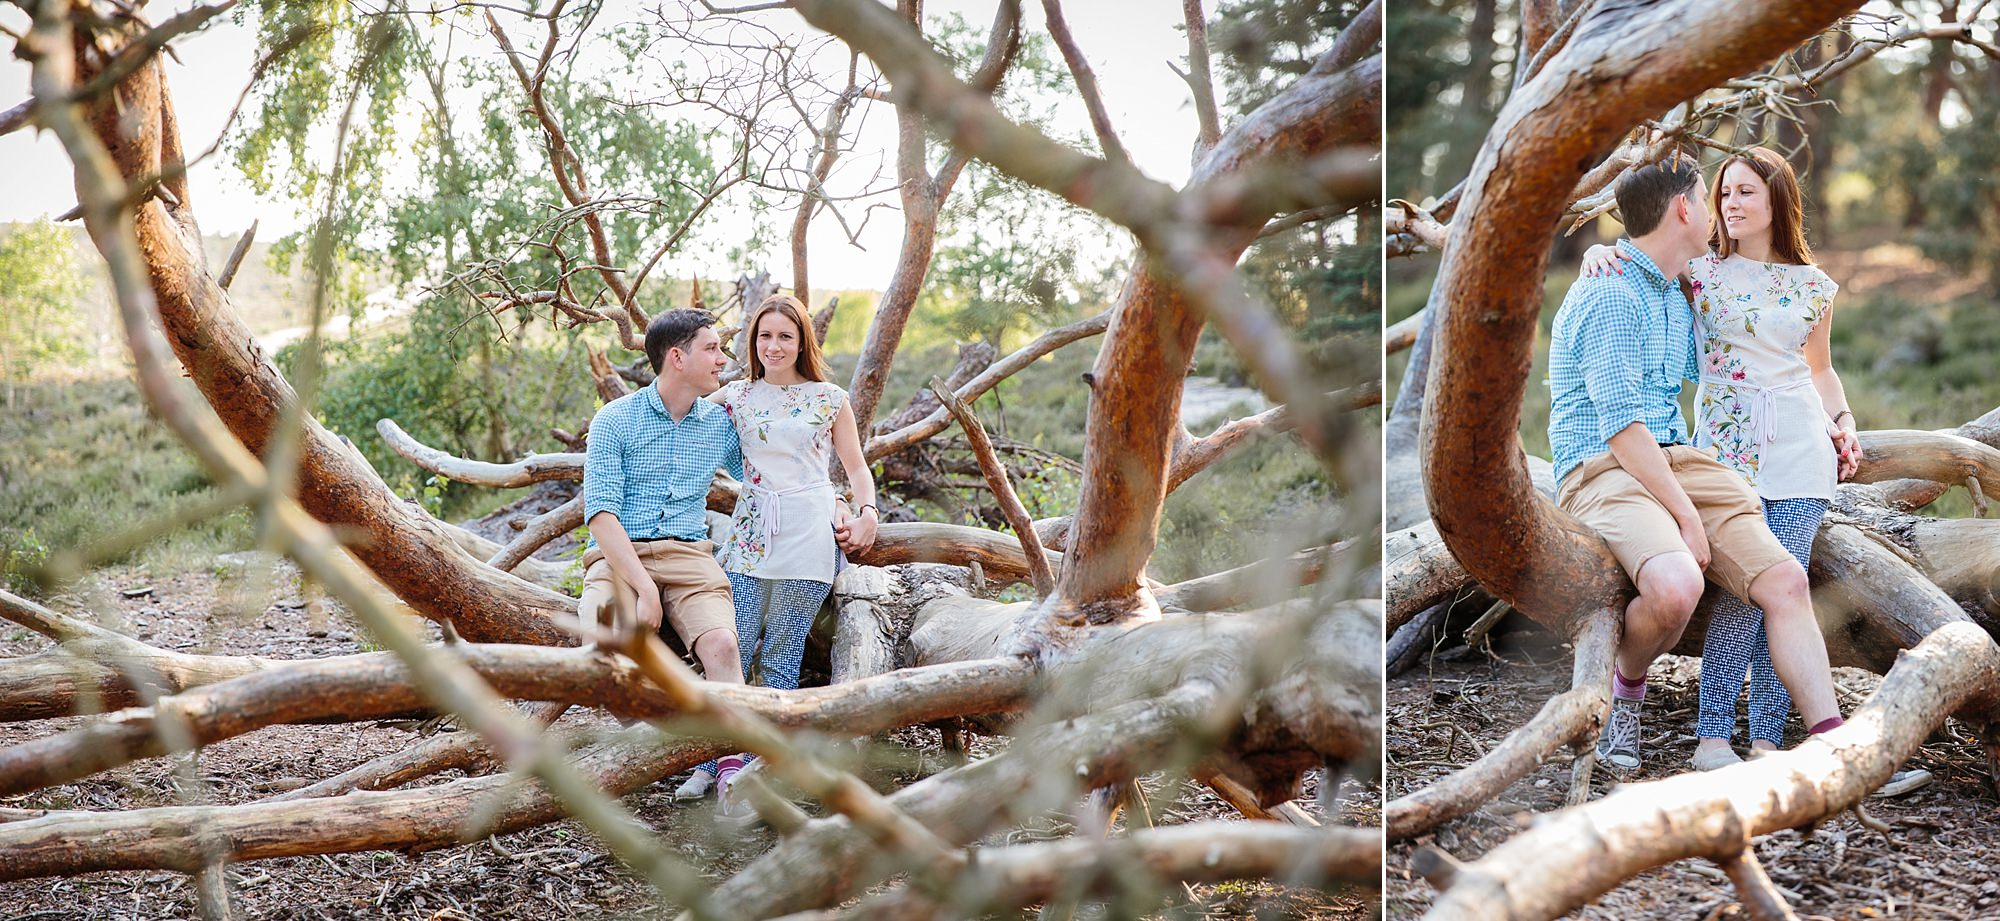 Farnham engagement photography at frensham ponds